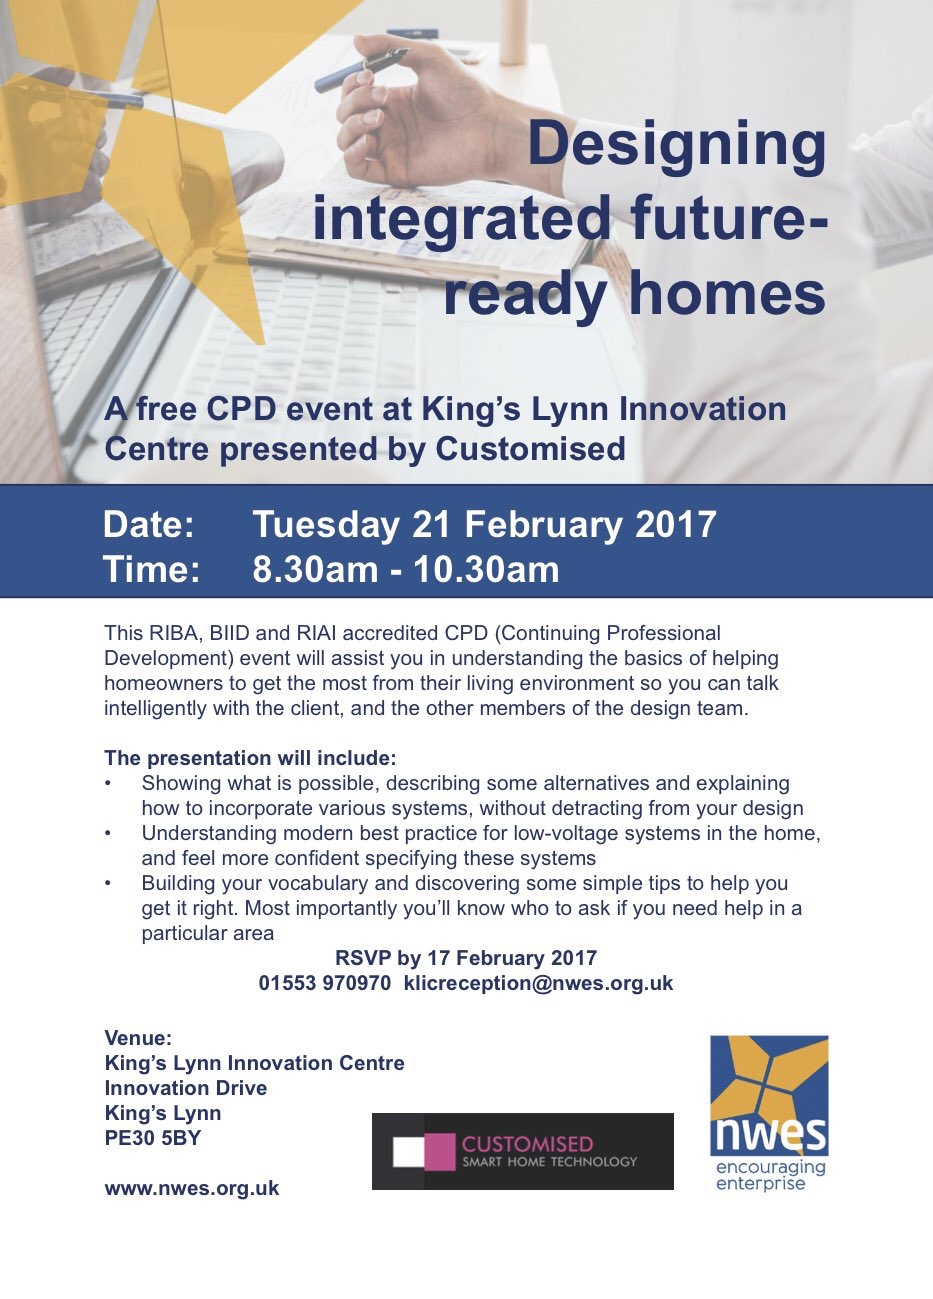 Customised CPD presentation in King's Lynn